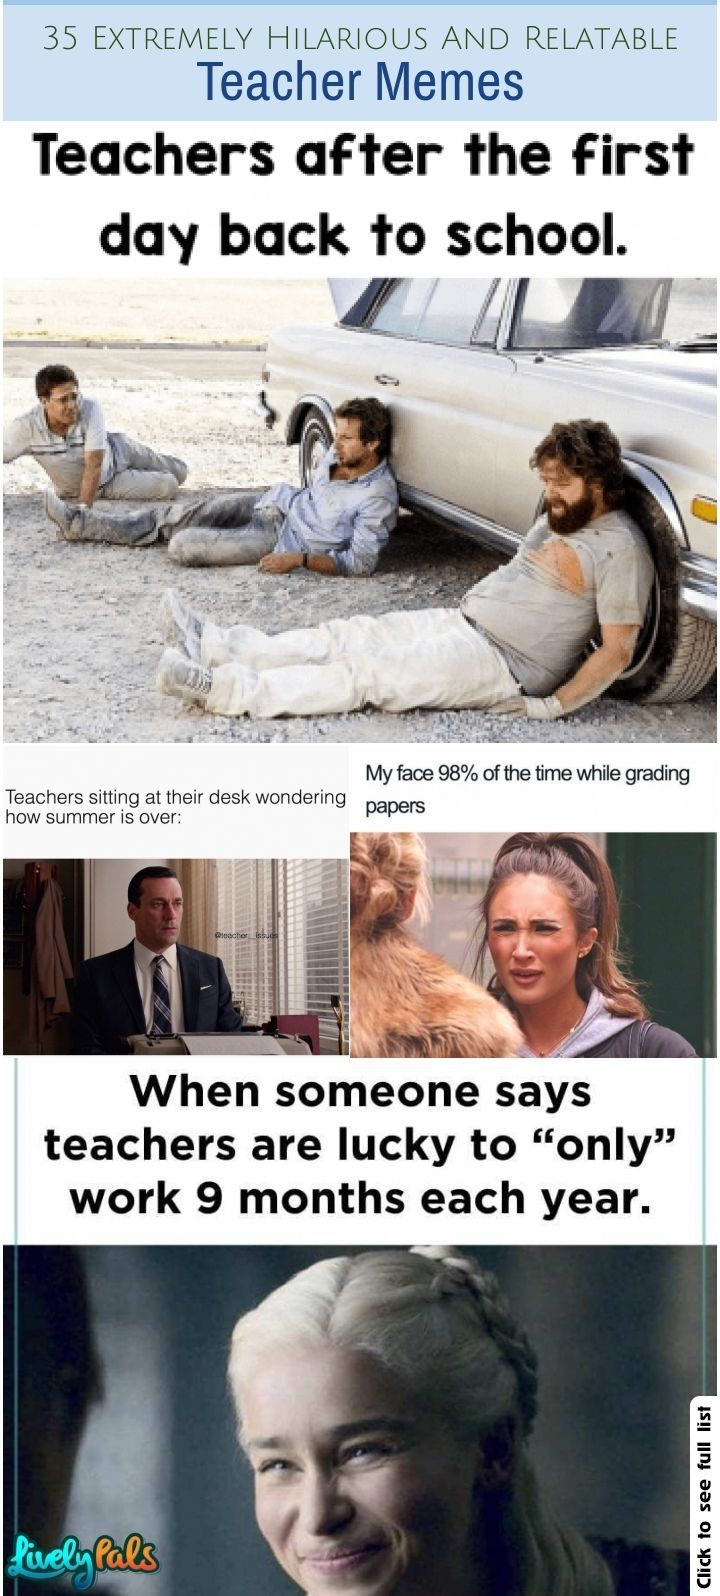 35 Extremely Hilarious And Relatable Teacher Memes Love Teachers Respect Life Learning Memories Fun Teaching Livelypals Teacher Memes Relatable Memes